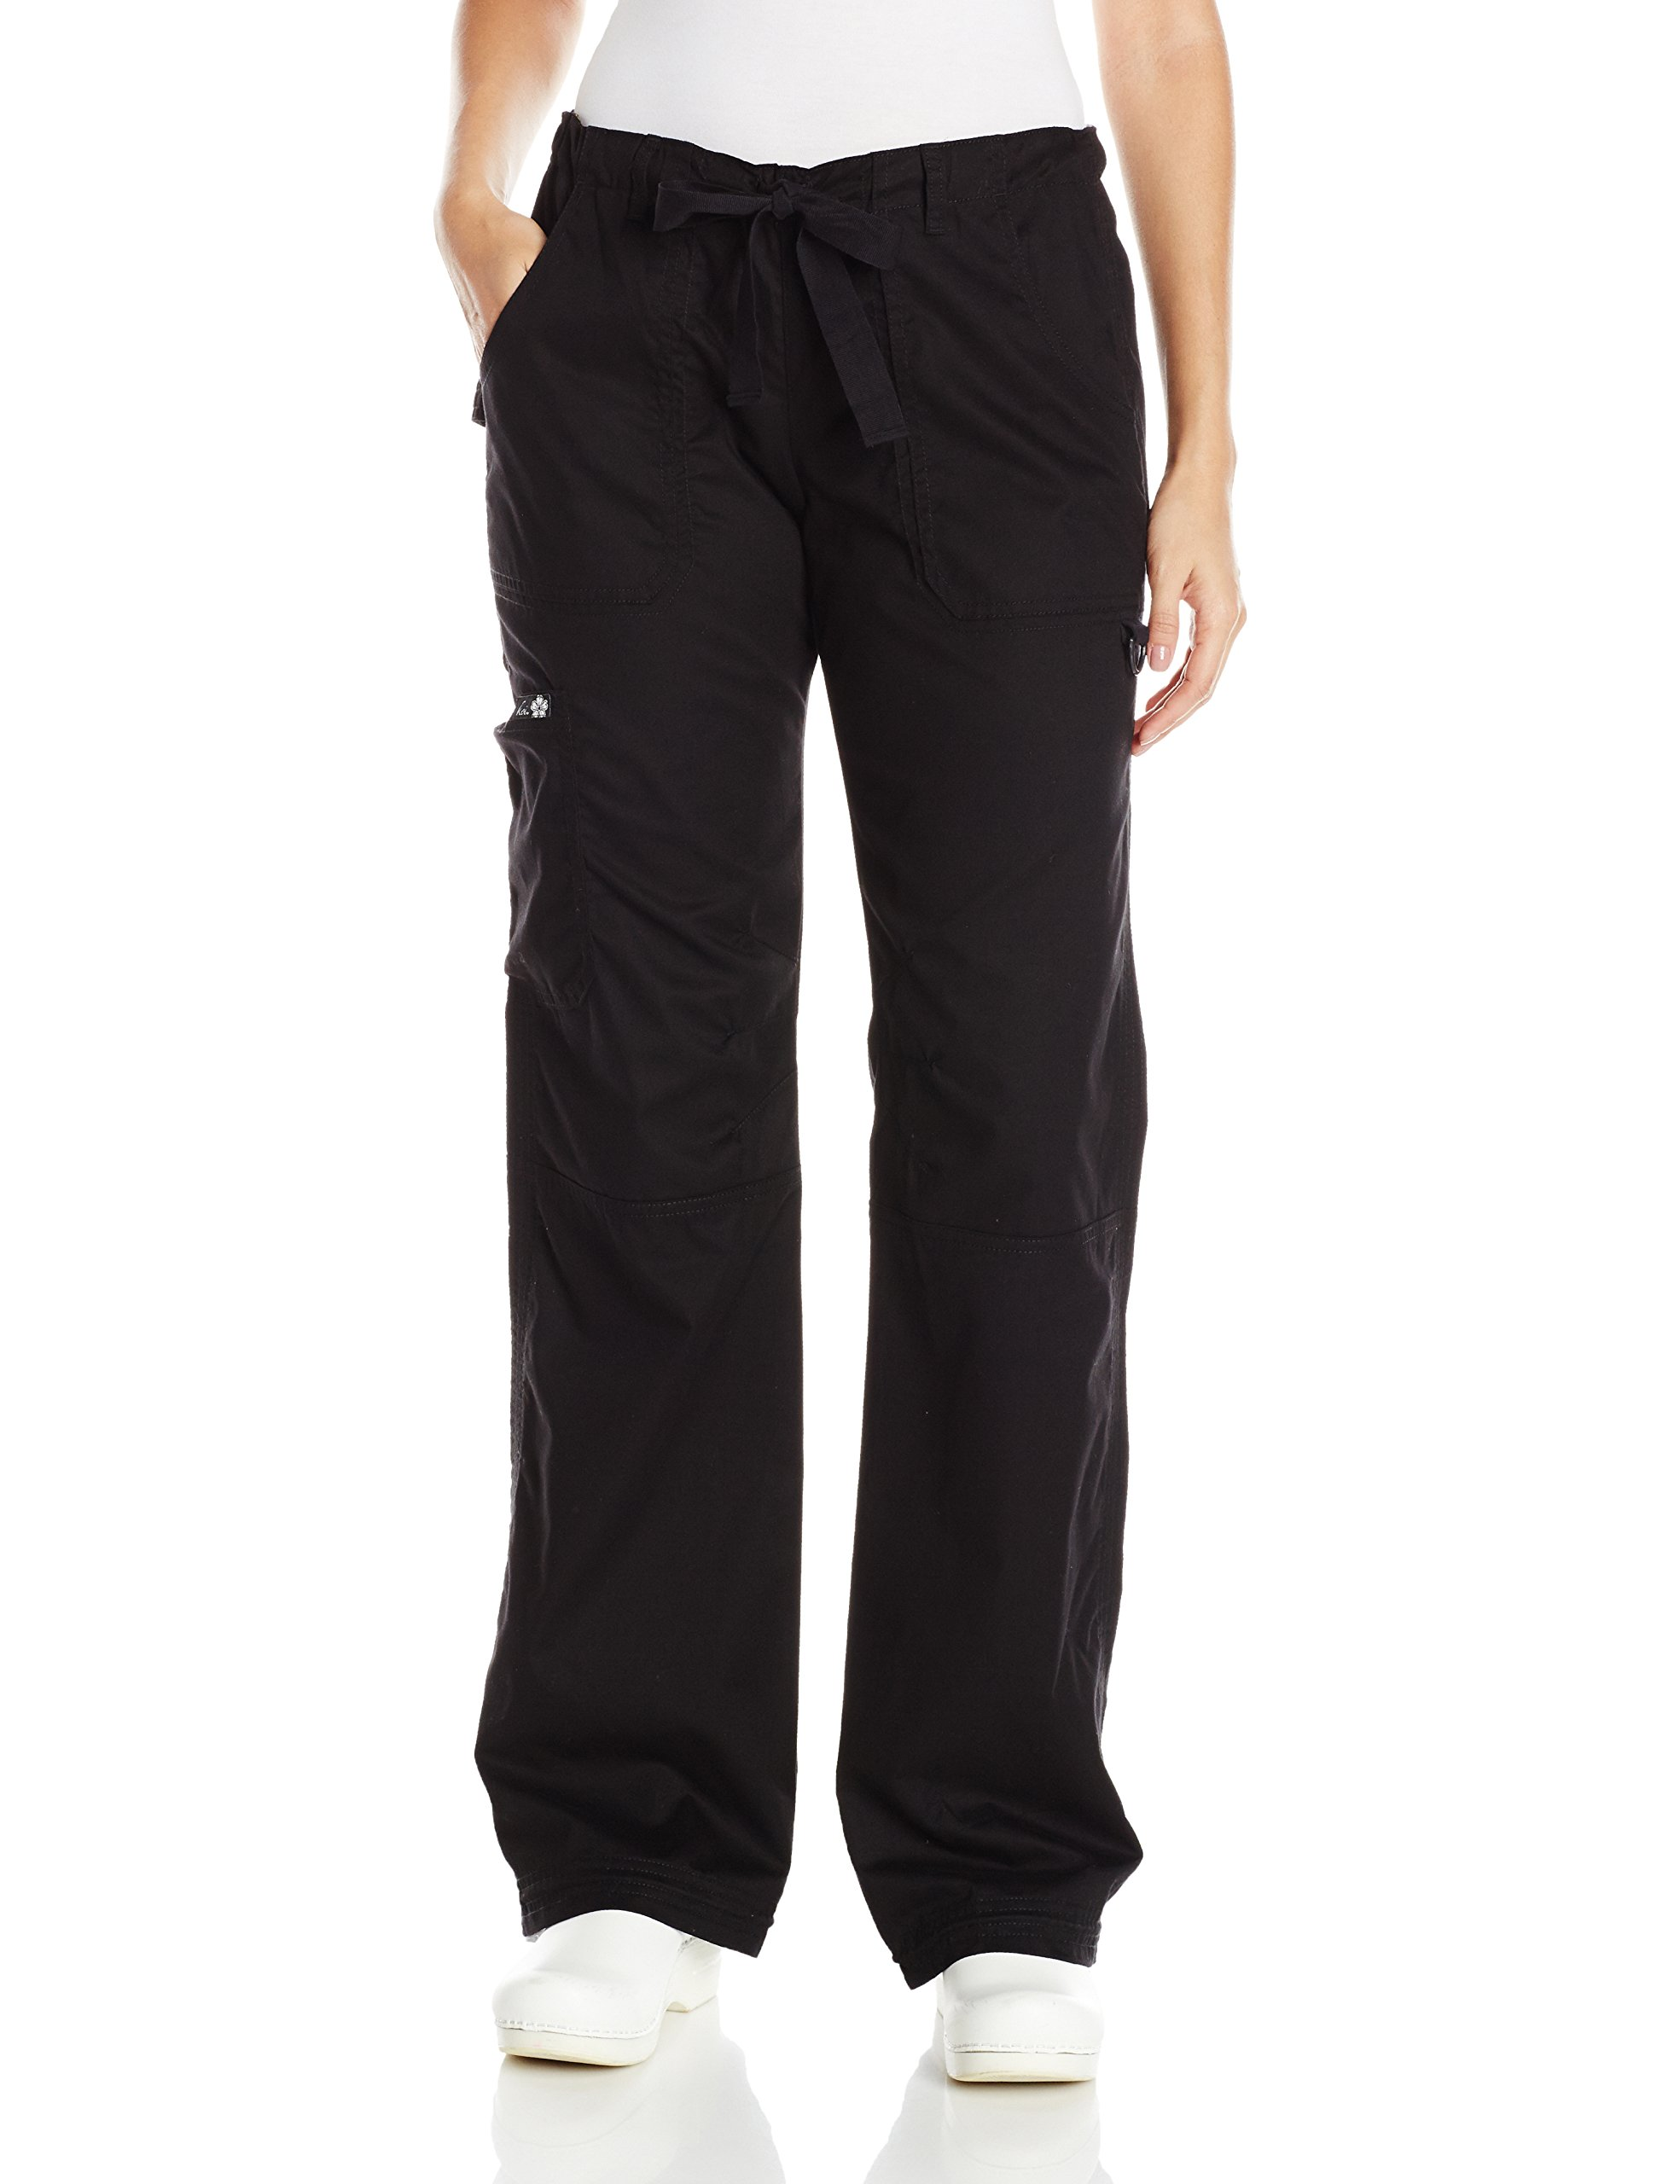 KOI Women's Tall Lindsey Ultra Comfortable Cargo Style Scrub Pants Sizes, Black, Large/Tall by KOI